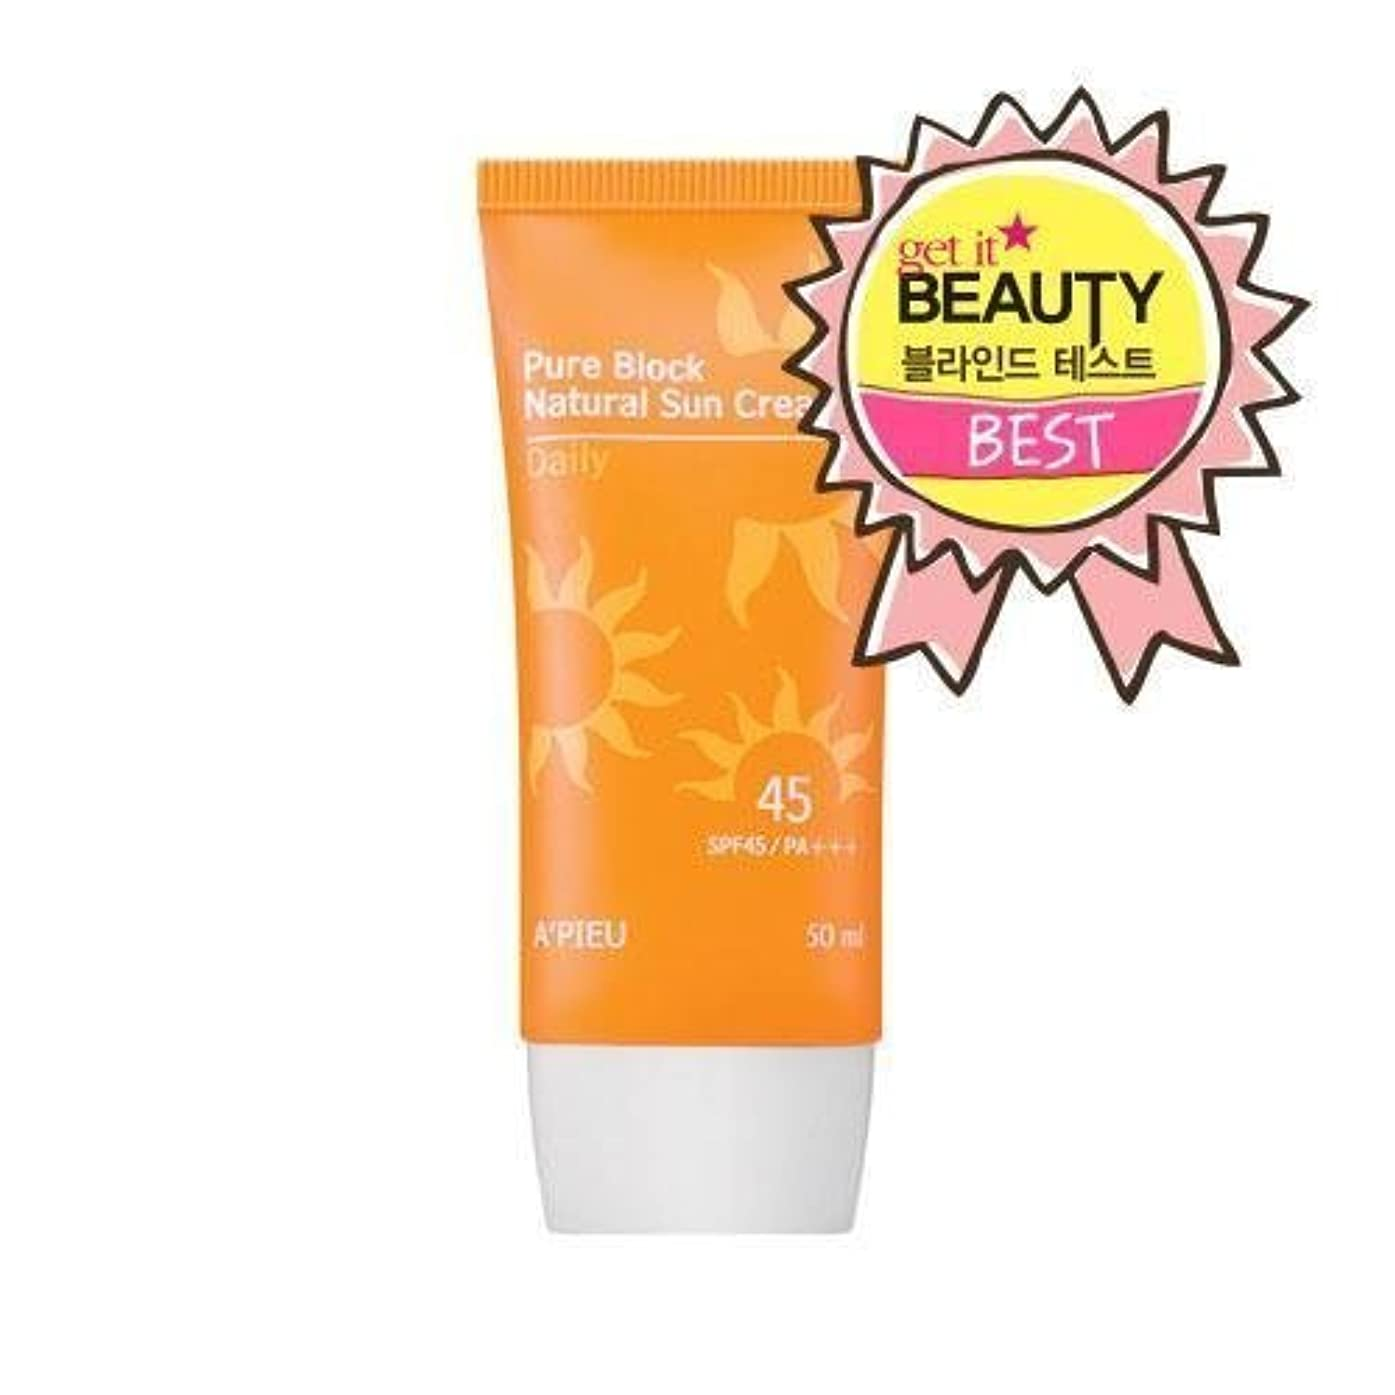 嫌がる守銭奴直径APIEU Pure Natural Daily Sun Cream (SPF45/PA+++)/ Made in Korea